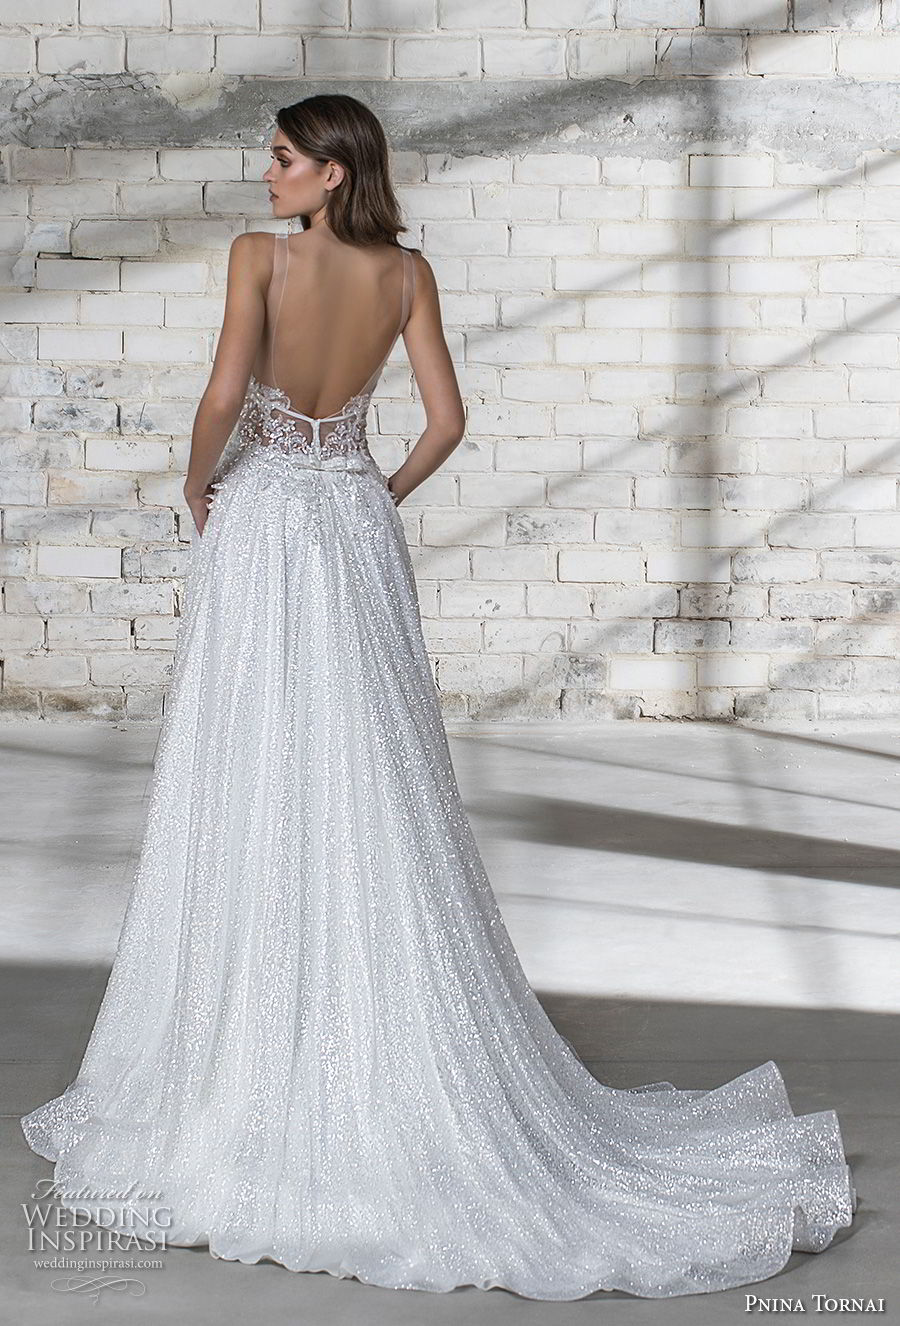 pnina tornai 2019 love bridal sleeveless deep plunging v neck light embellishment glitzy glitter romantic glamorous a line wedding dress with pockets open back chapel train (4) bv